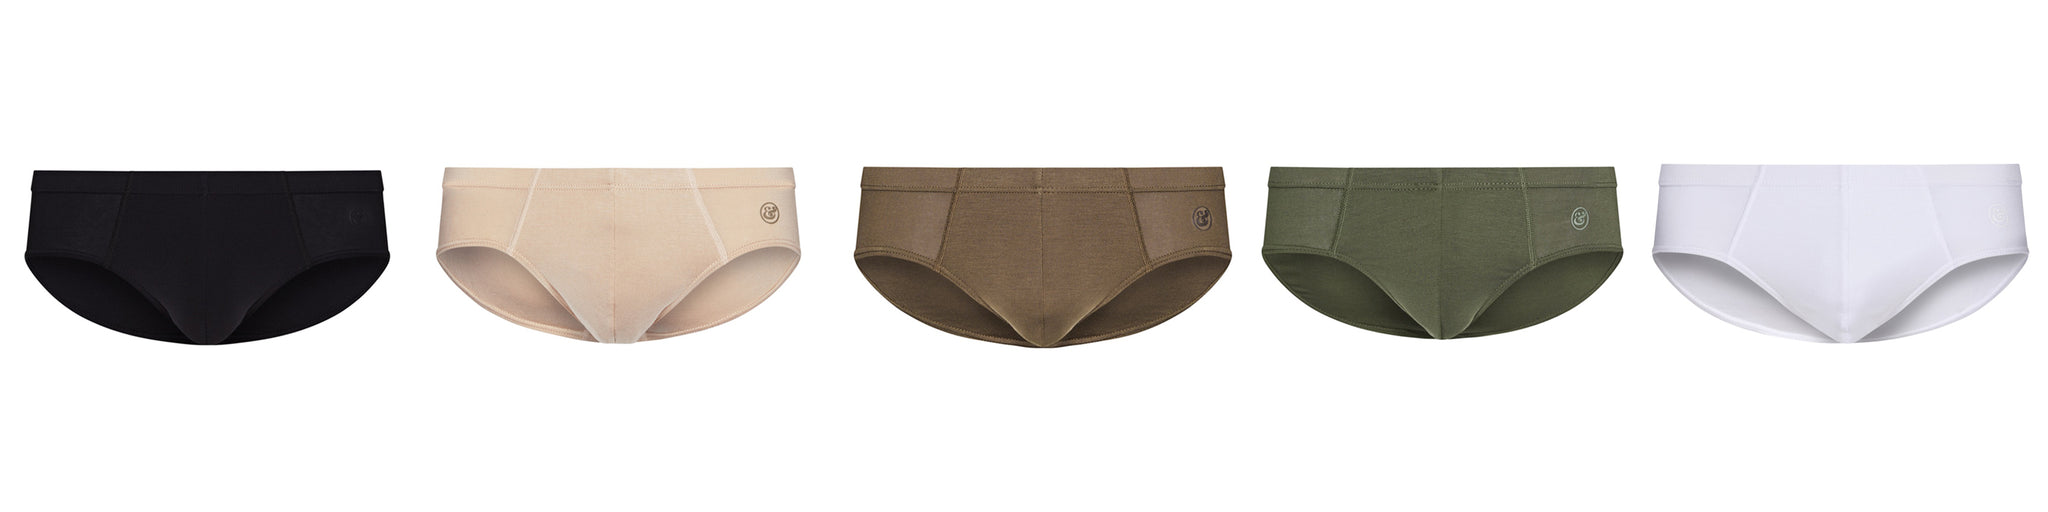 BANG AND STRIKE MICROMODAL SLIP BRIEF IN 5 COLOURS - BLACK, DESERT, KHAKI, RIFLE GREEN AND WHITE